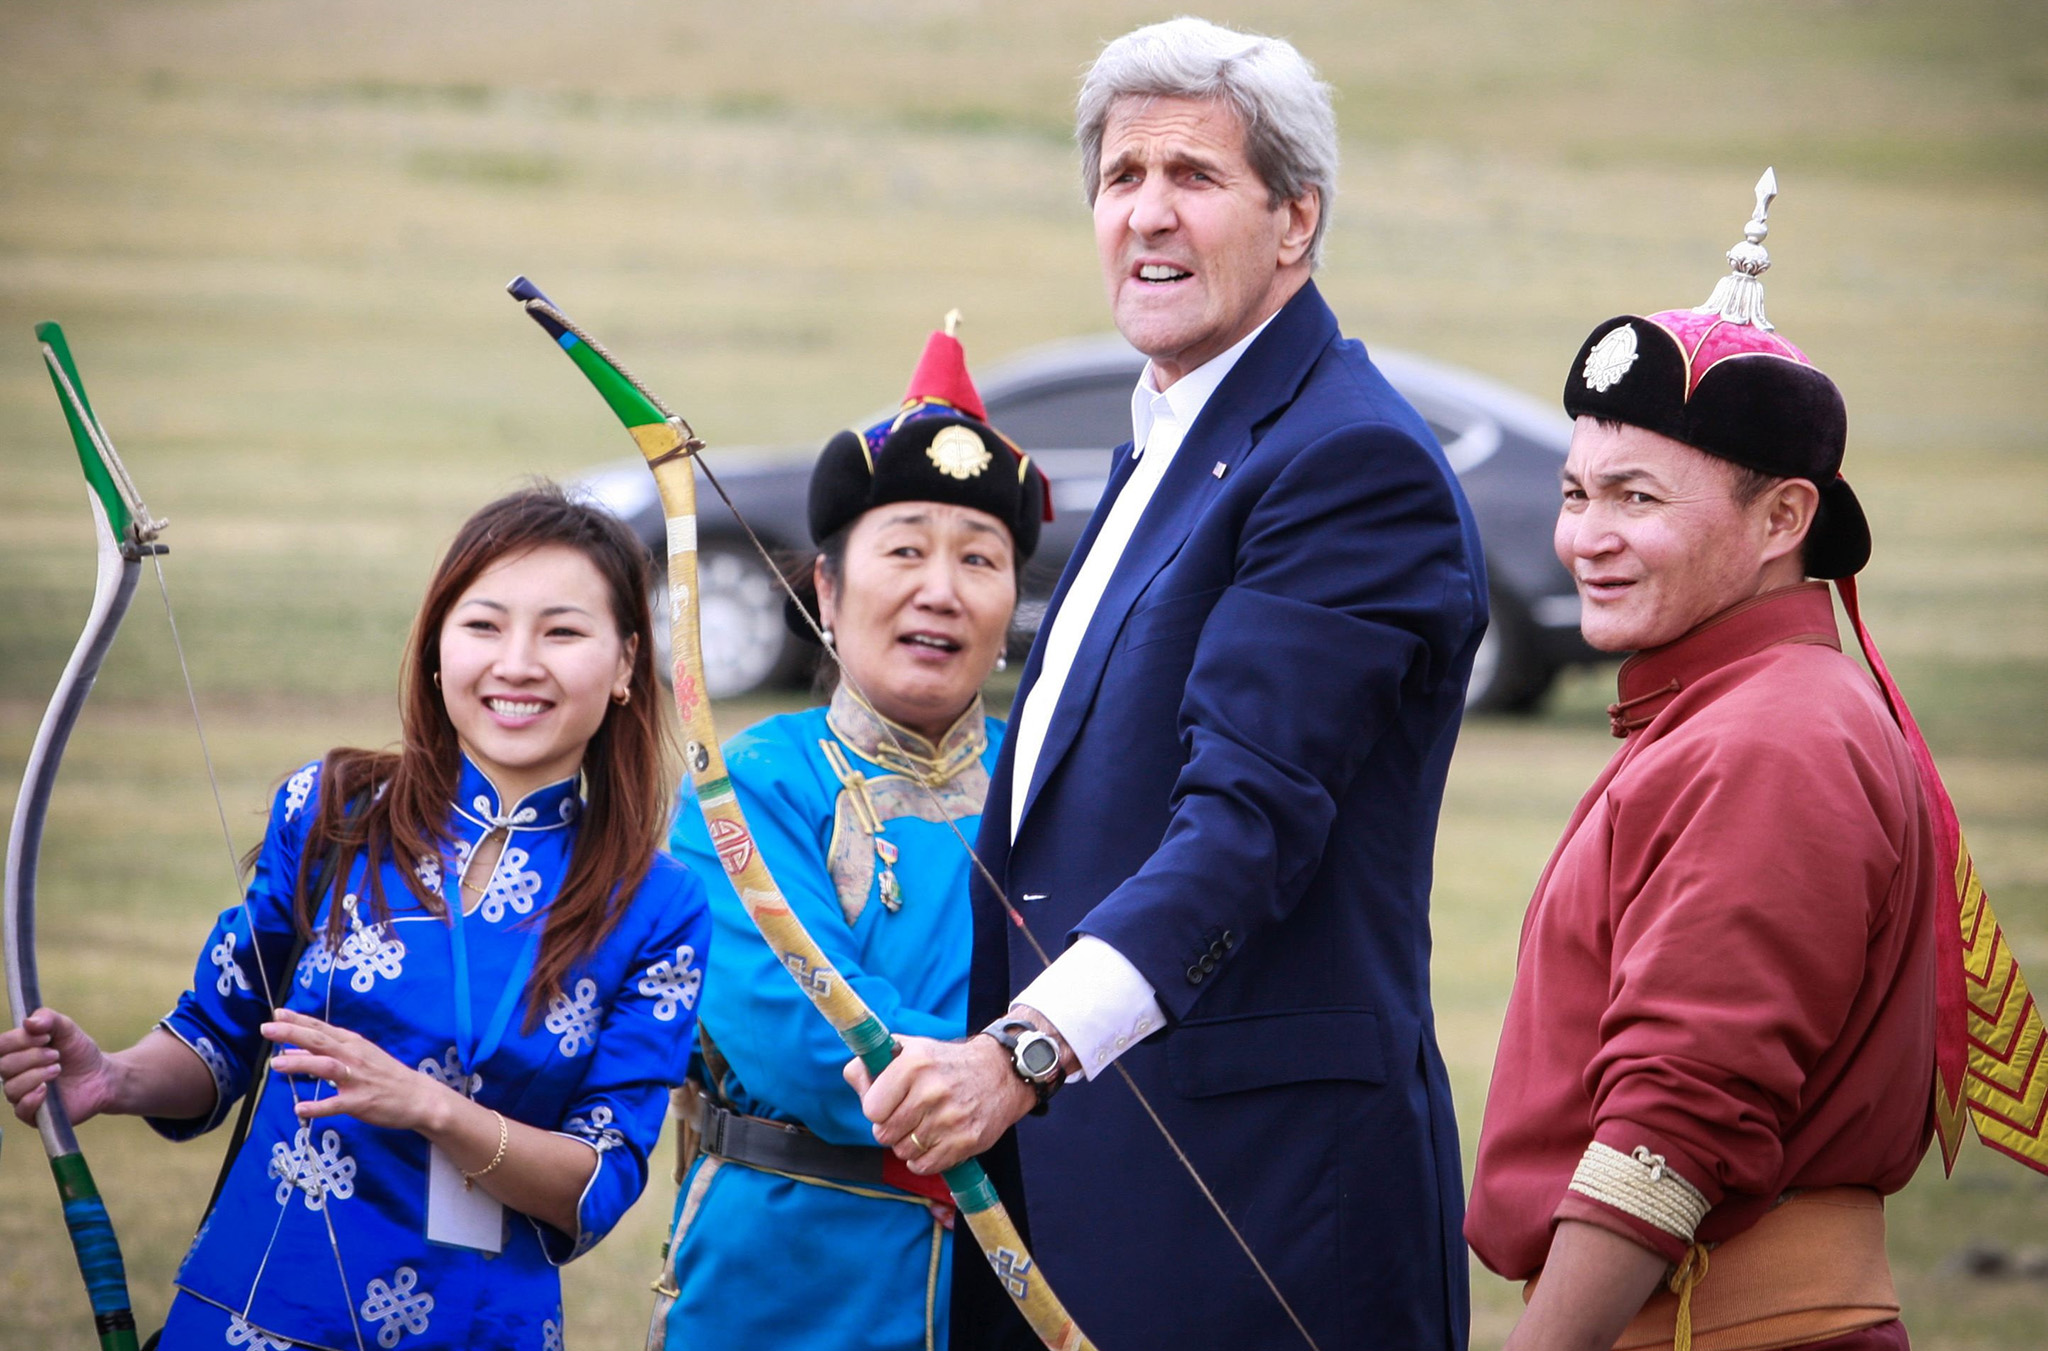 US Secretary of State John Kerry reacts after shooting a bow and arrow as he participates in a Naadam ceremony, a competition which traditionally includes horse racing, Mongolian wrestling and archery, in Ulan Bator, Mongolia.